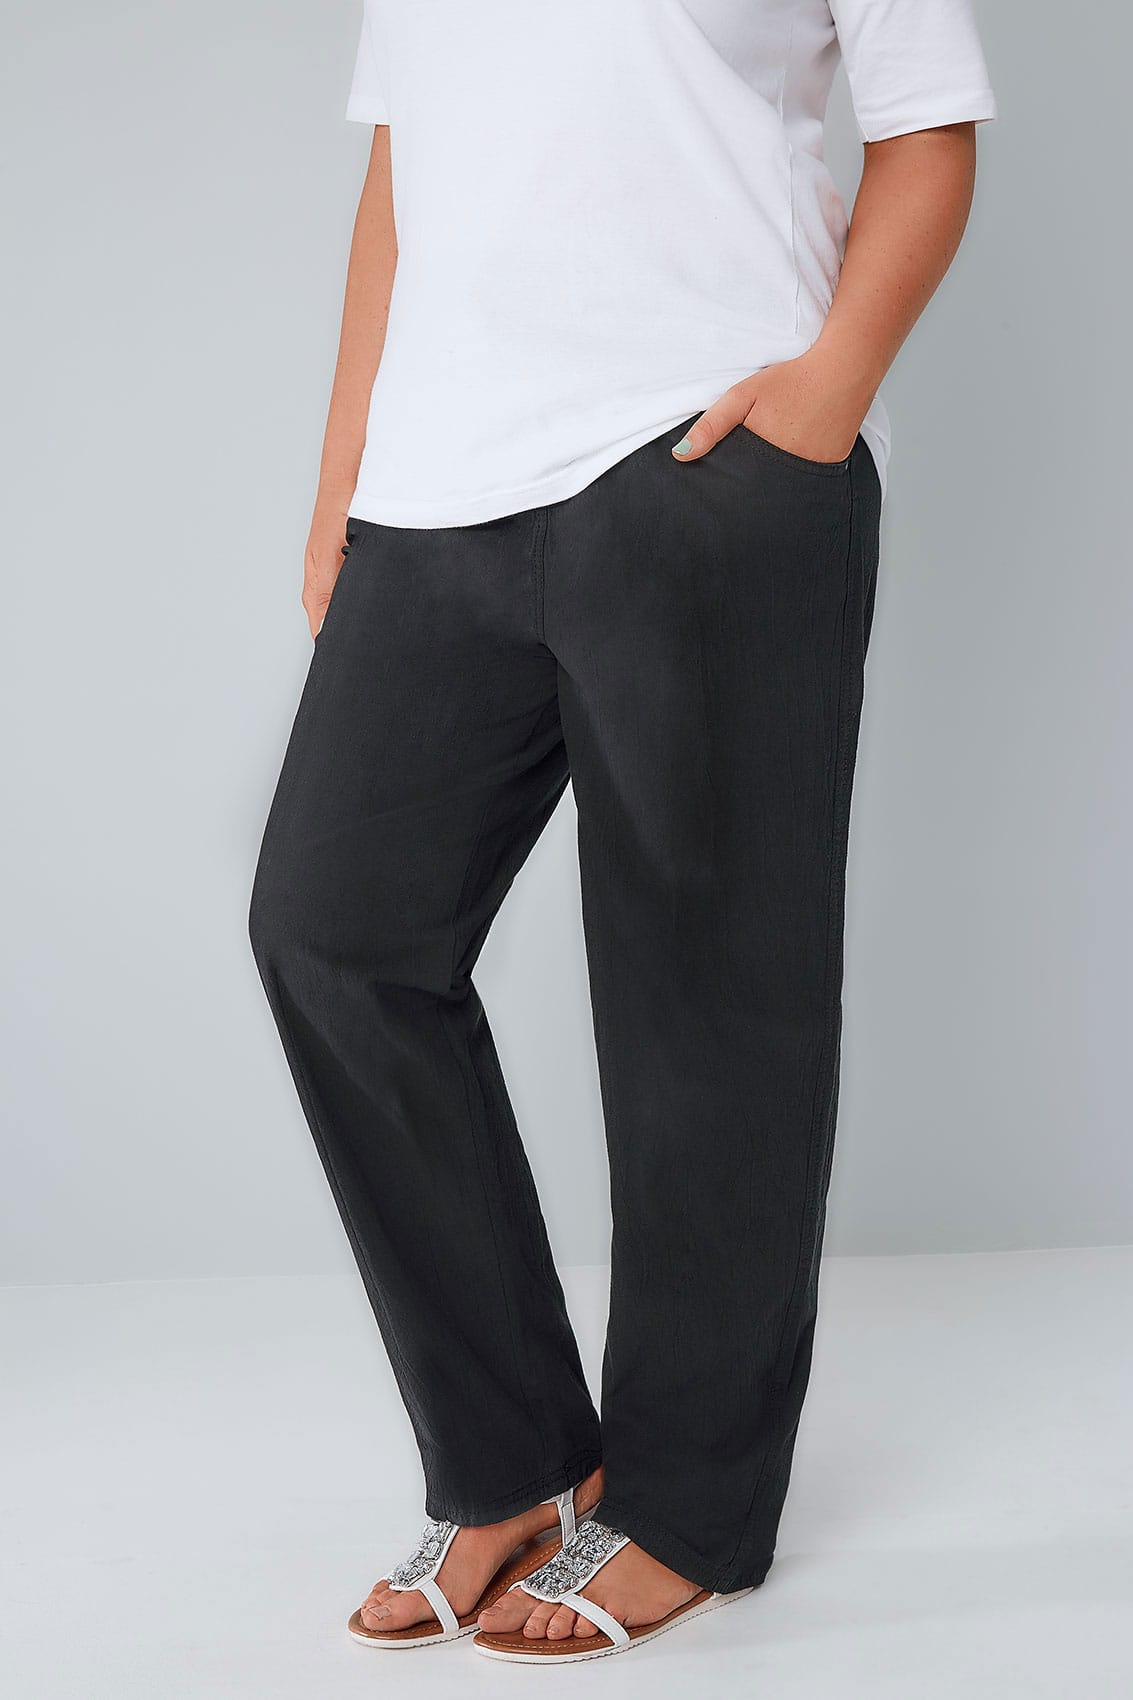 Black Cool Cotton Pull On Wide Leg Trousers With Pockets -4468